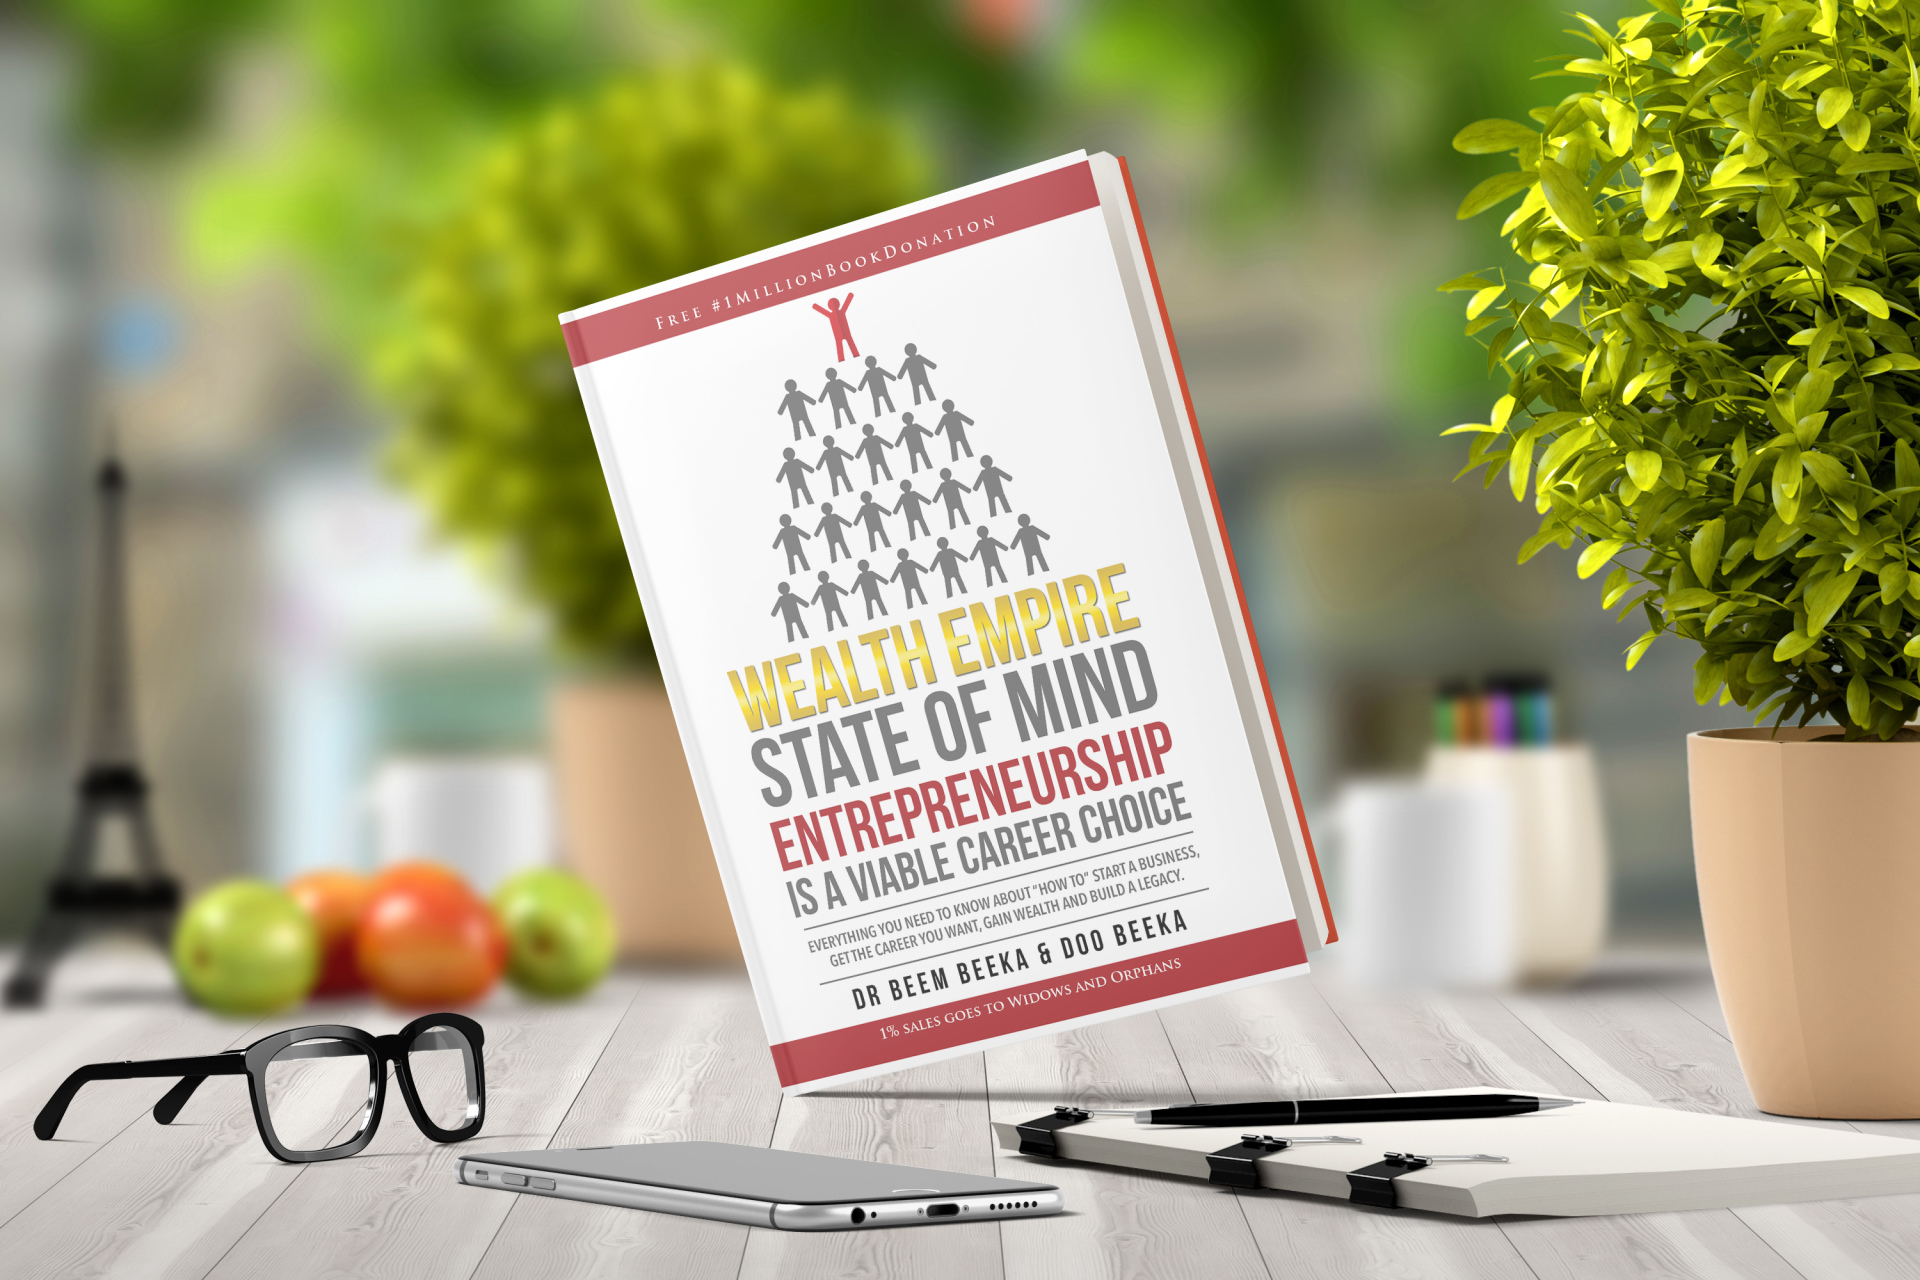 Wealth Empire State of Mind: Entrepreneurship is a Viable Career Choice